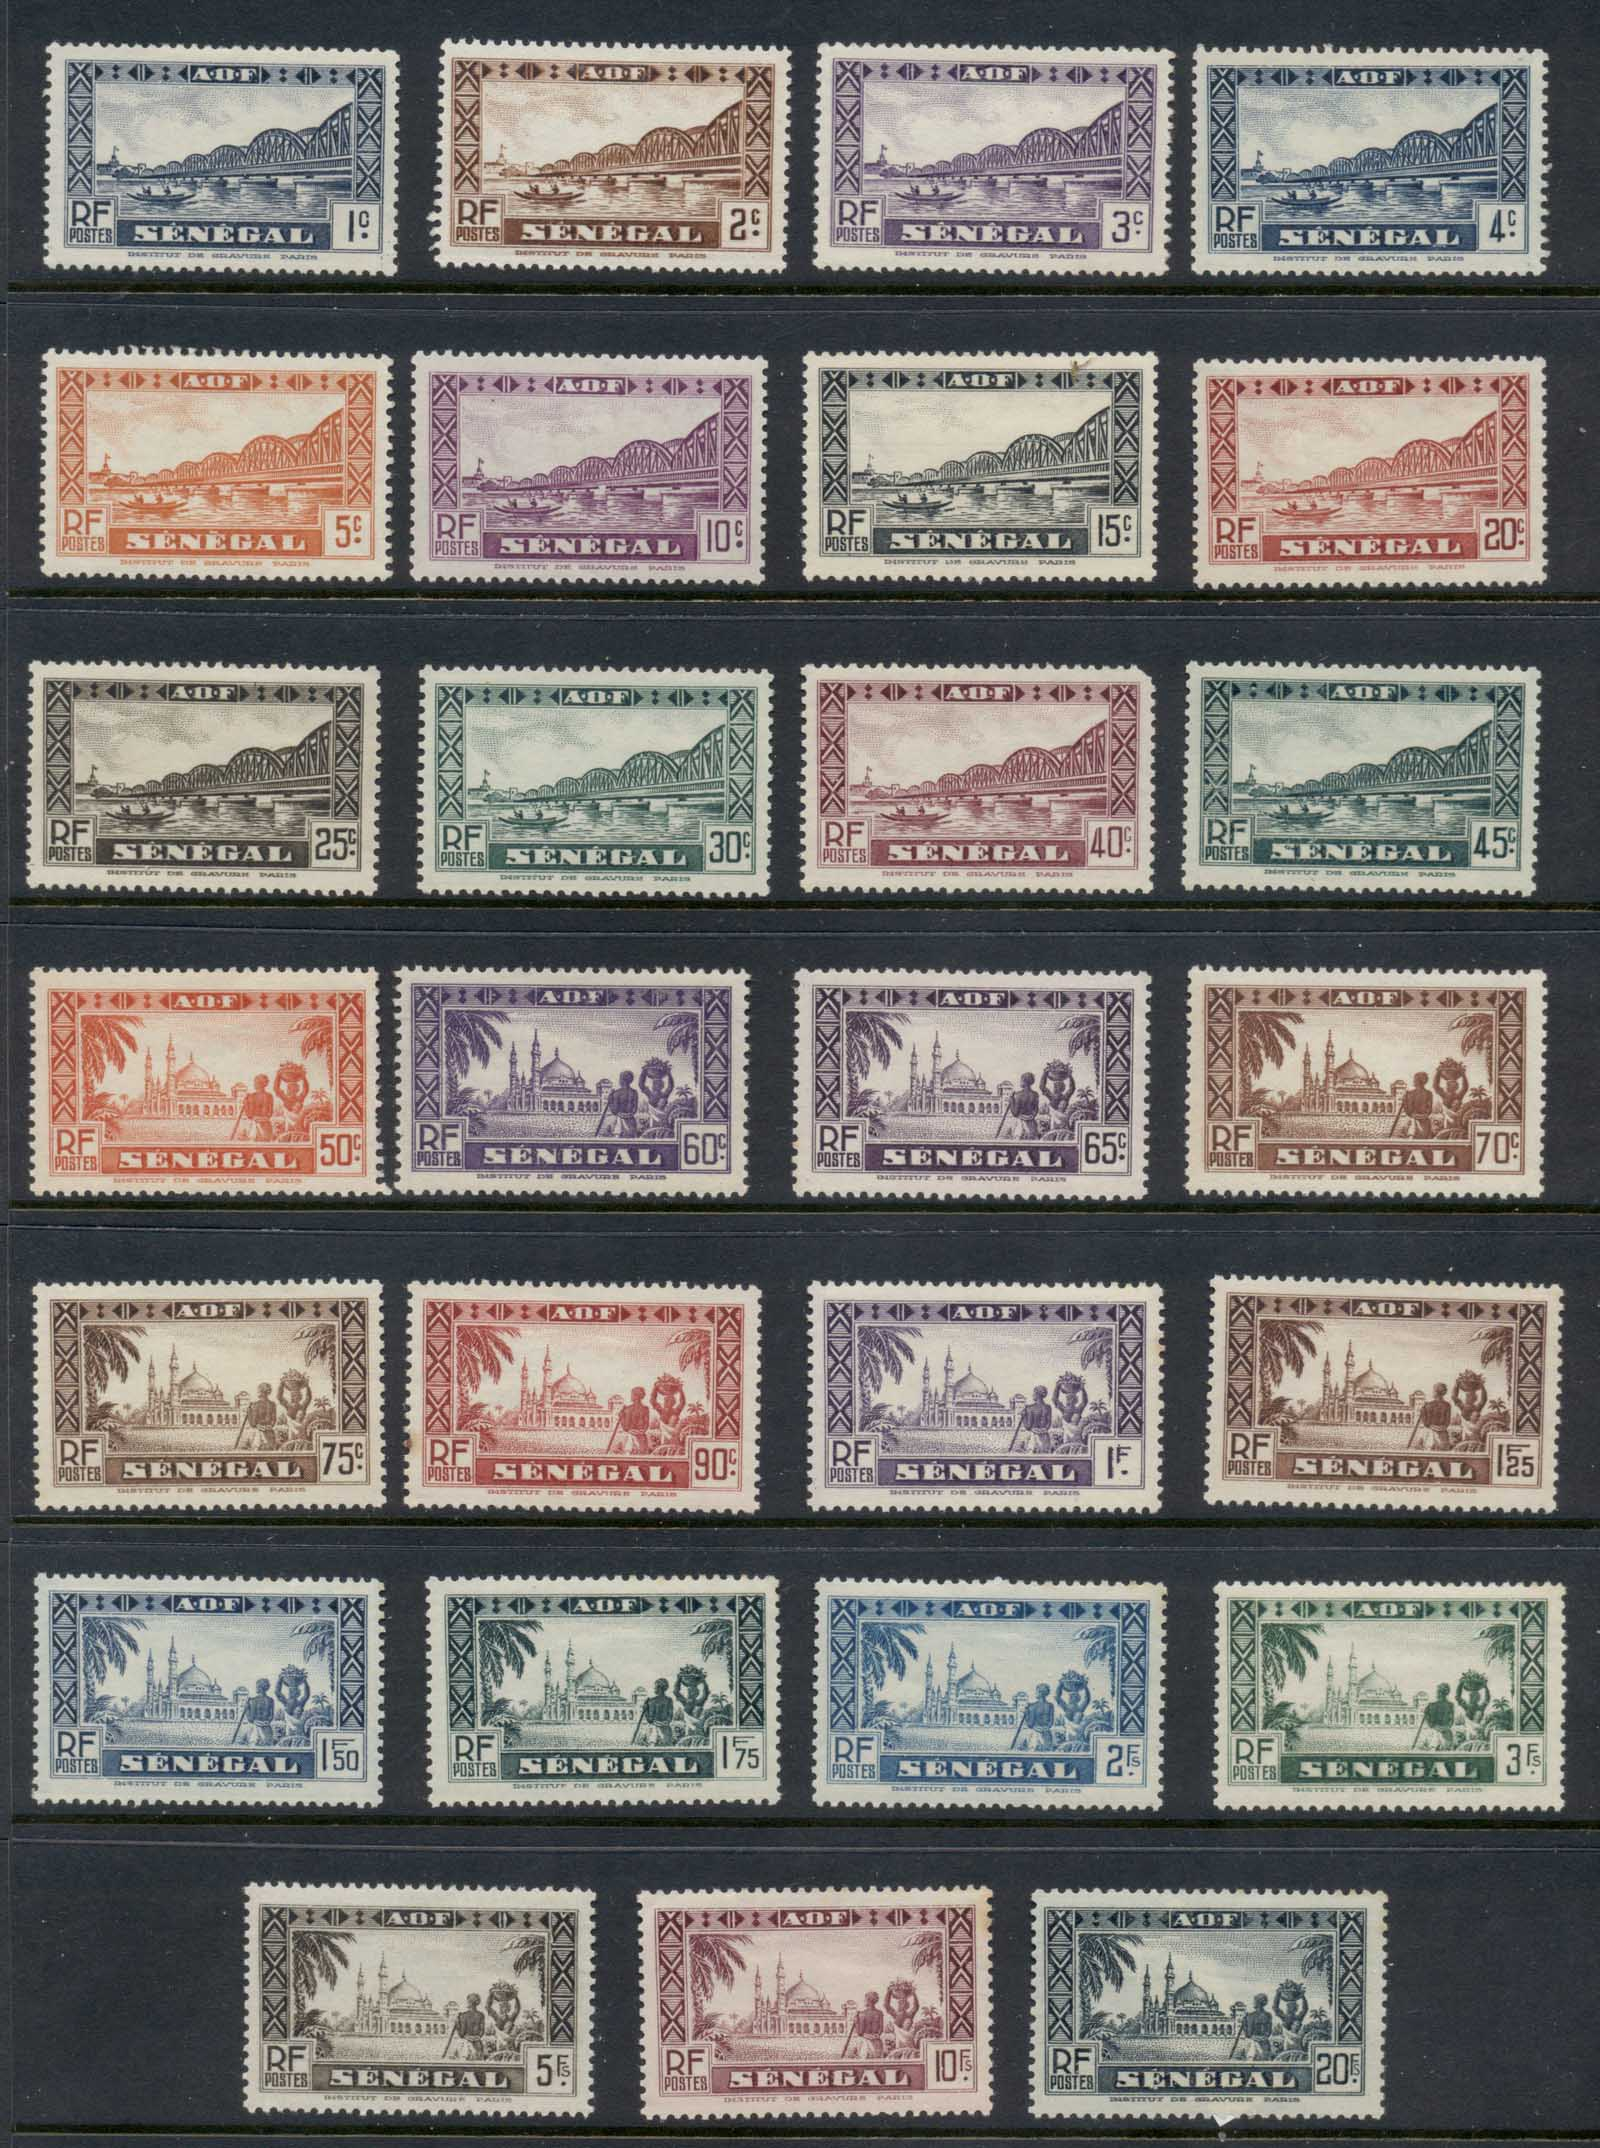 Senegal 1935-40 Pictorials Asst (small faults) (27/30) MLH